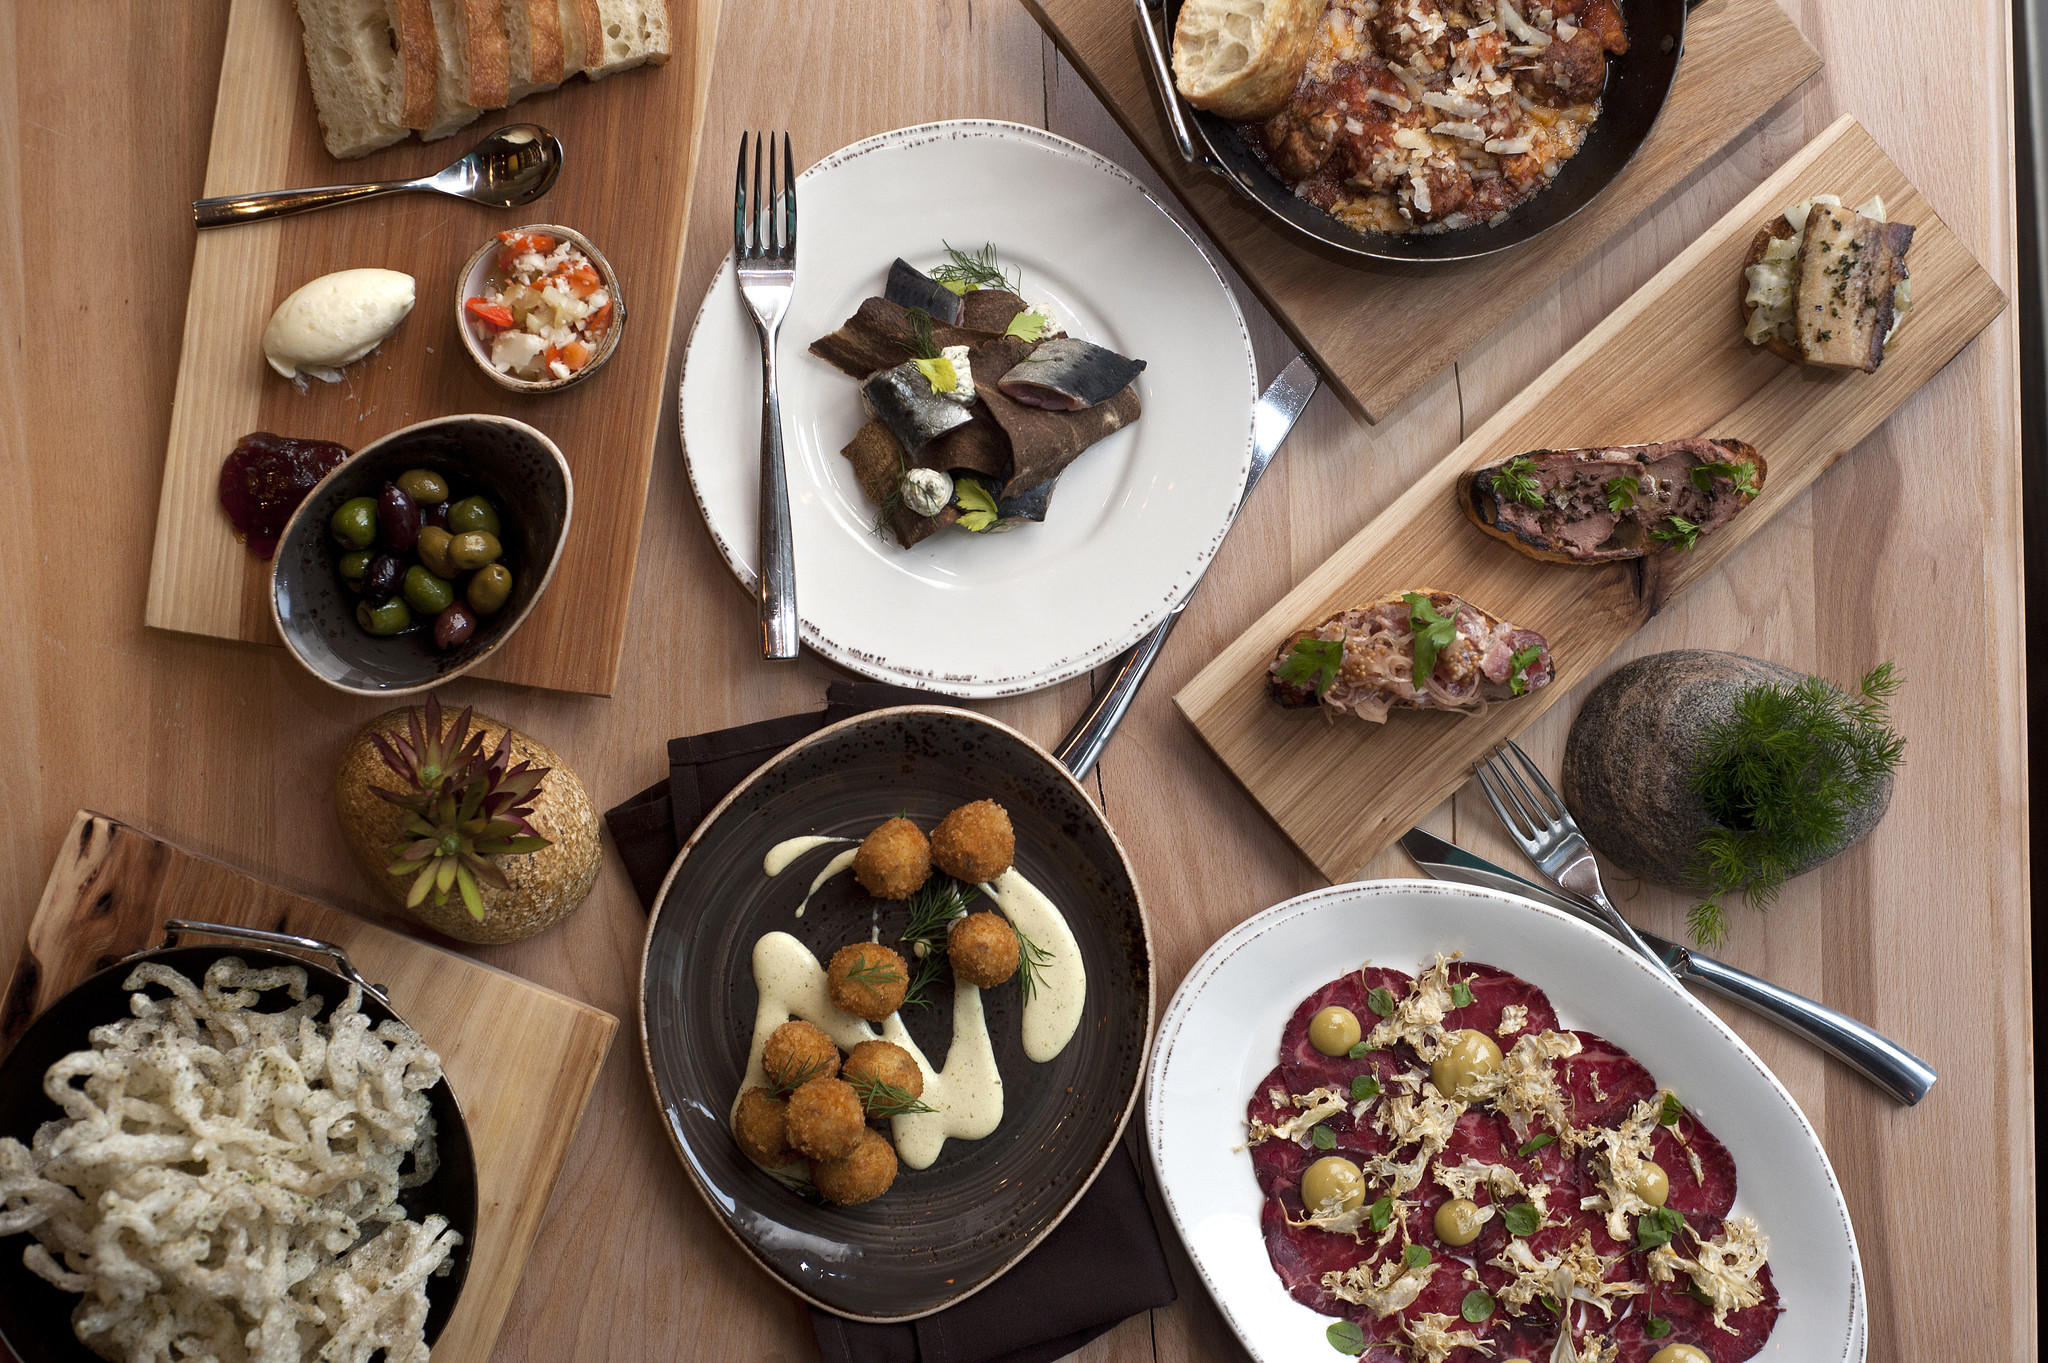 Dishes at Cicchetti (clockwise from top left): olives with foccacia, sardines, meatballs, bruschette, steak carpaccio, cod and prosciutto croquettes and pork cracklins